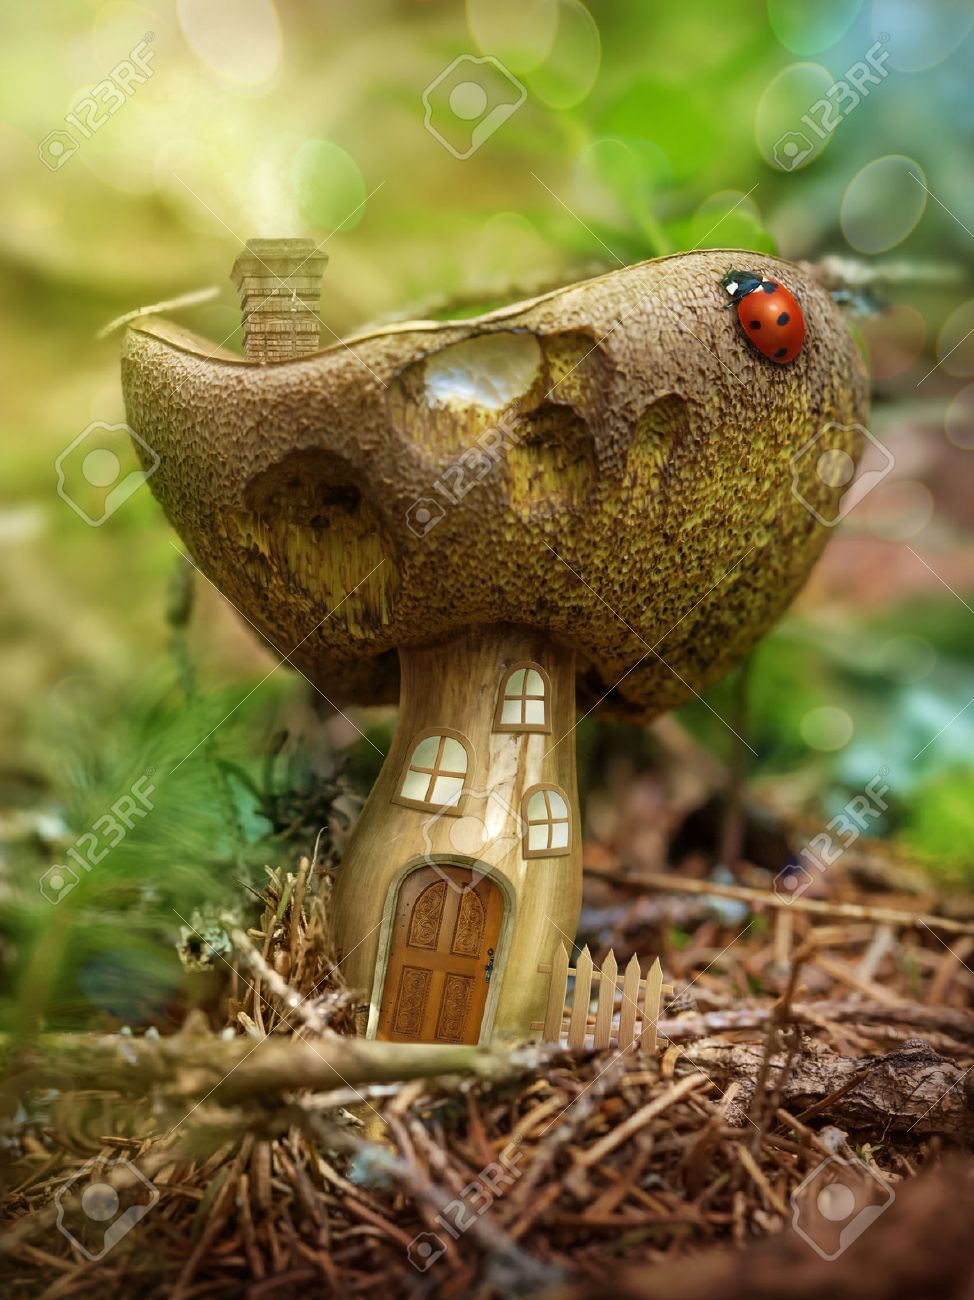 Fantasy mushroom house in the forest Stock Photo - 30492282